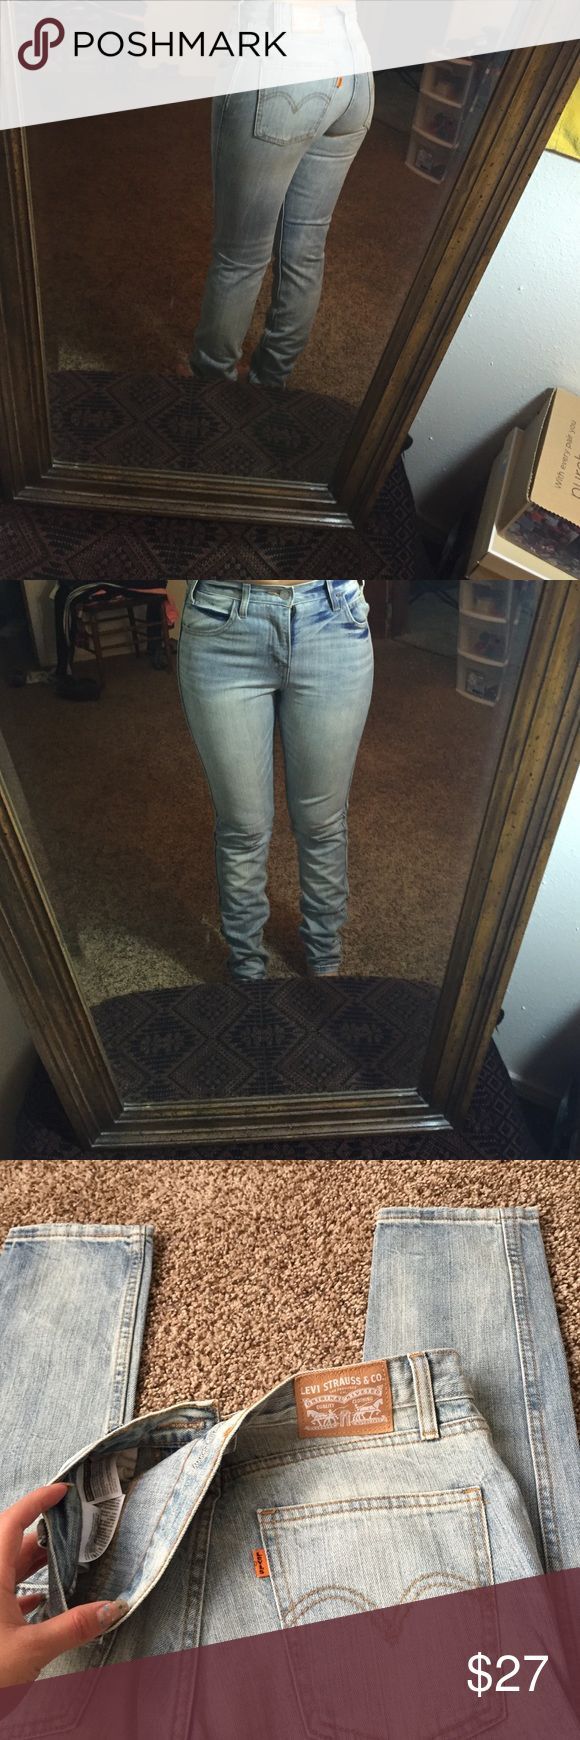 New Levi's women's skinny New  Levi's Women's Skinny jeans it's new without tags, never used 🚫NO TRADE🚫 Levi's Jeans Skinny